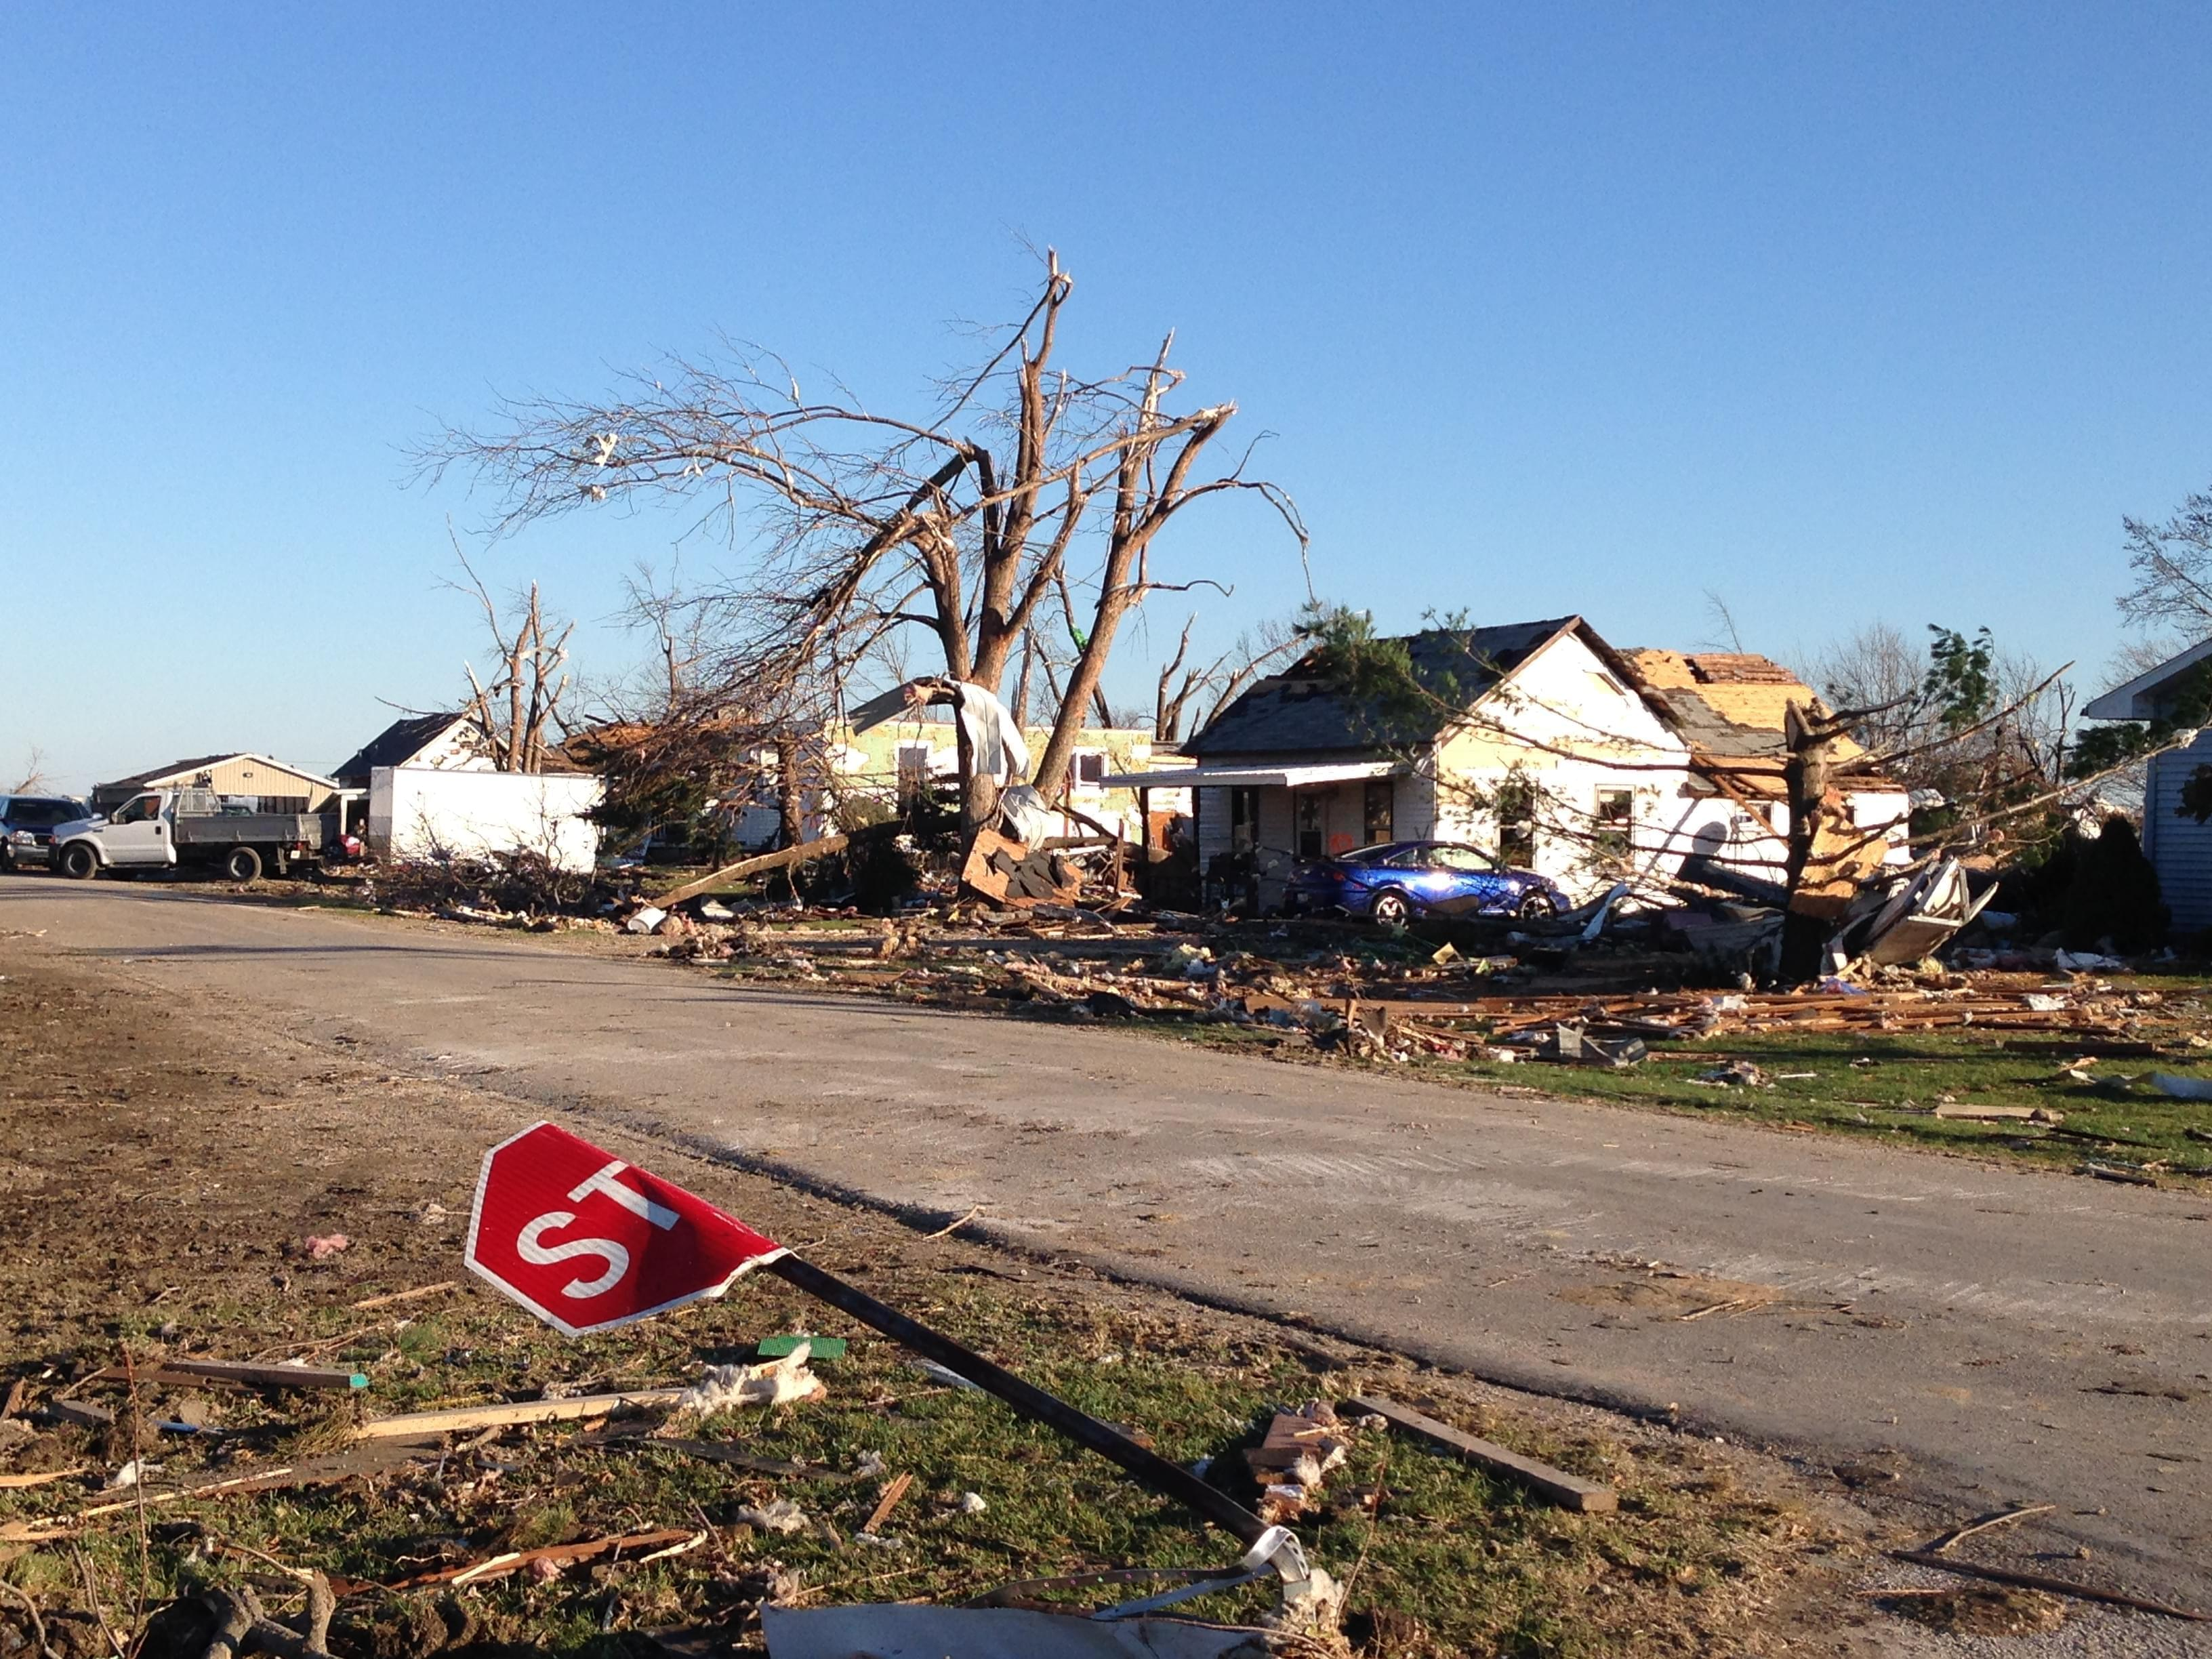 Damage caused by 2013 tornado in Gifford, Illinois.